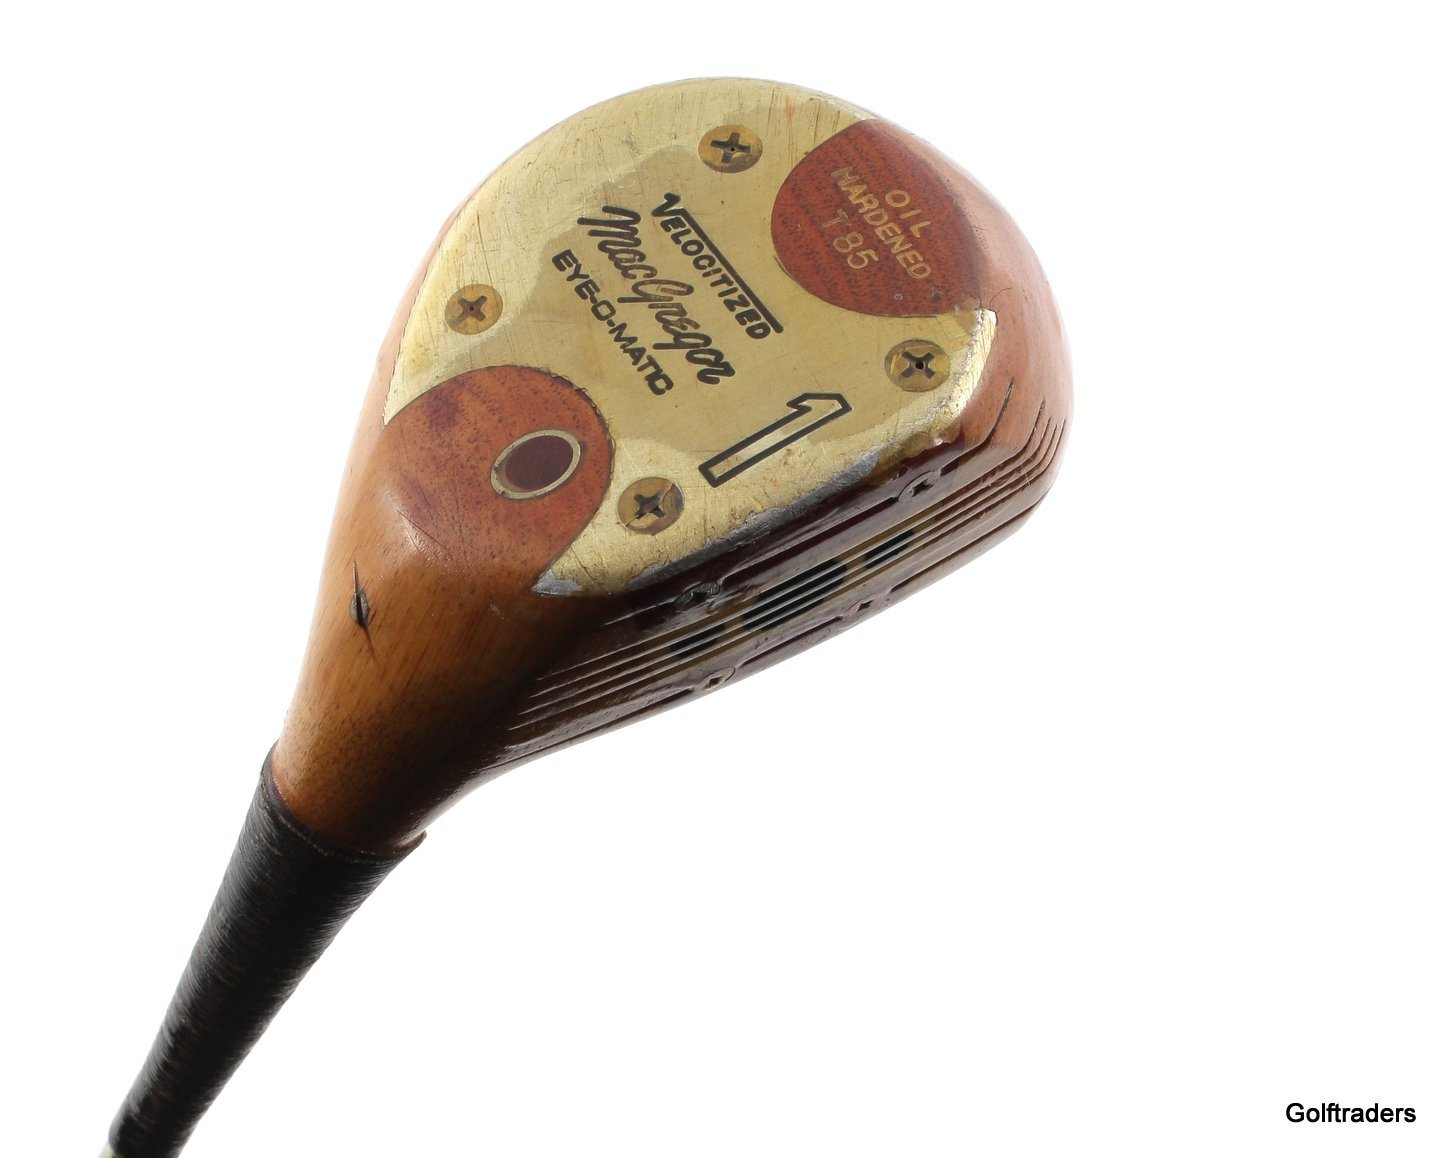 MACGREGOR EYE-O-MATIC VELOCITIZED VINTAGE DRIVER STEEL EXTRA STIFF+NEW GRIP #F6 - Image 1